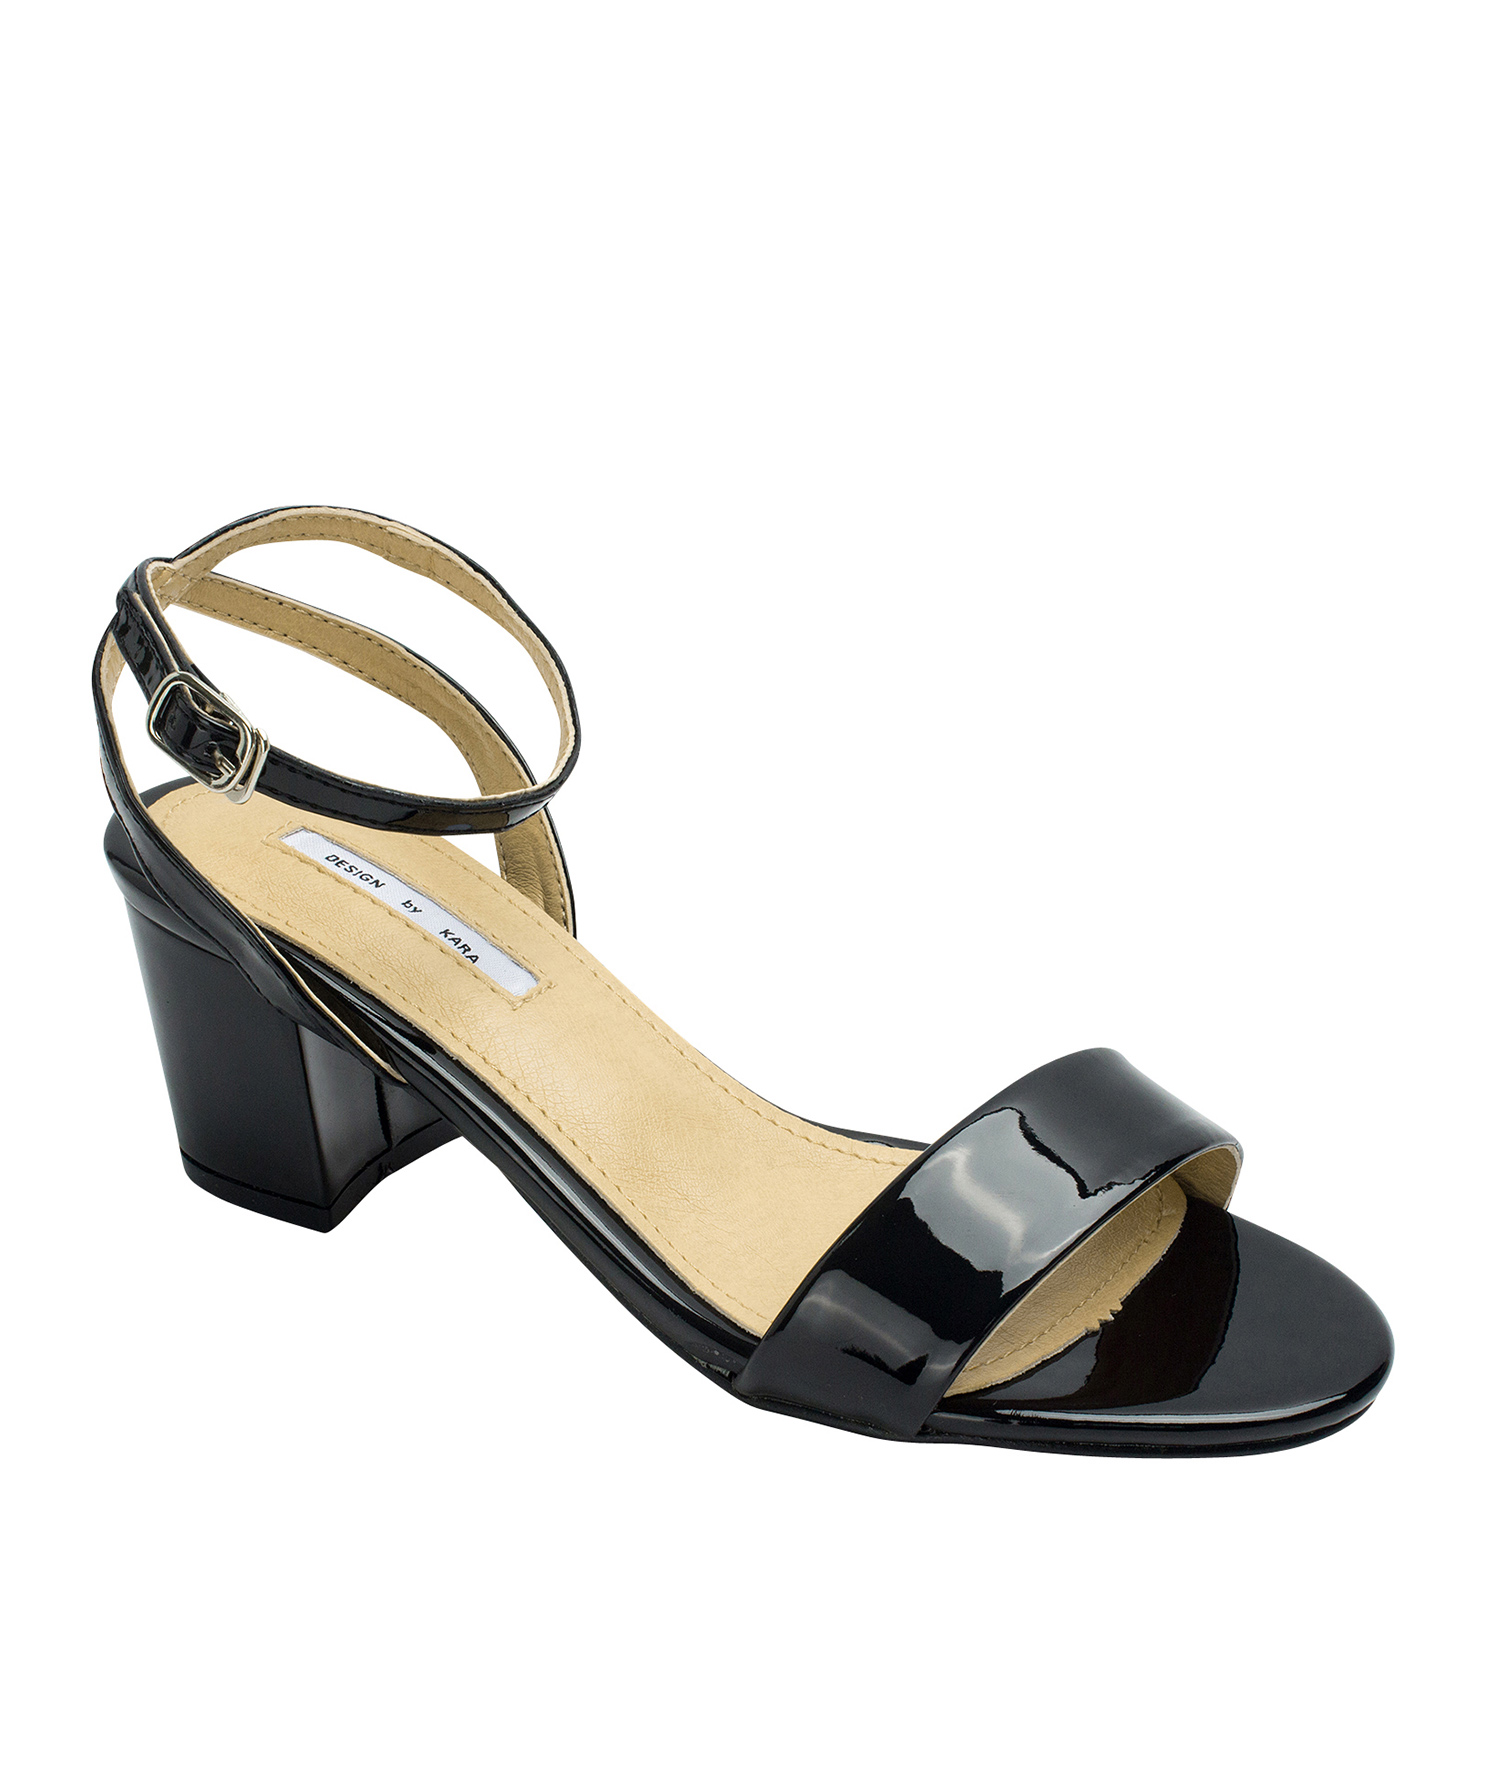 07b54131a13 AnnaKastle Womens Patent Ankle Strap Block Heel Sandals Black